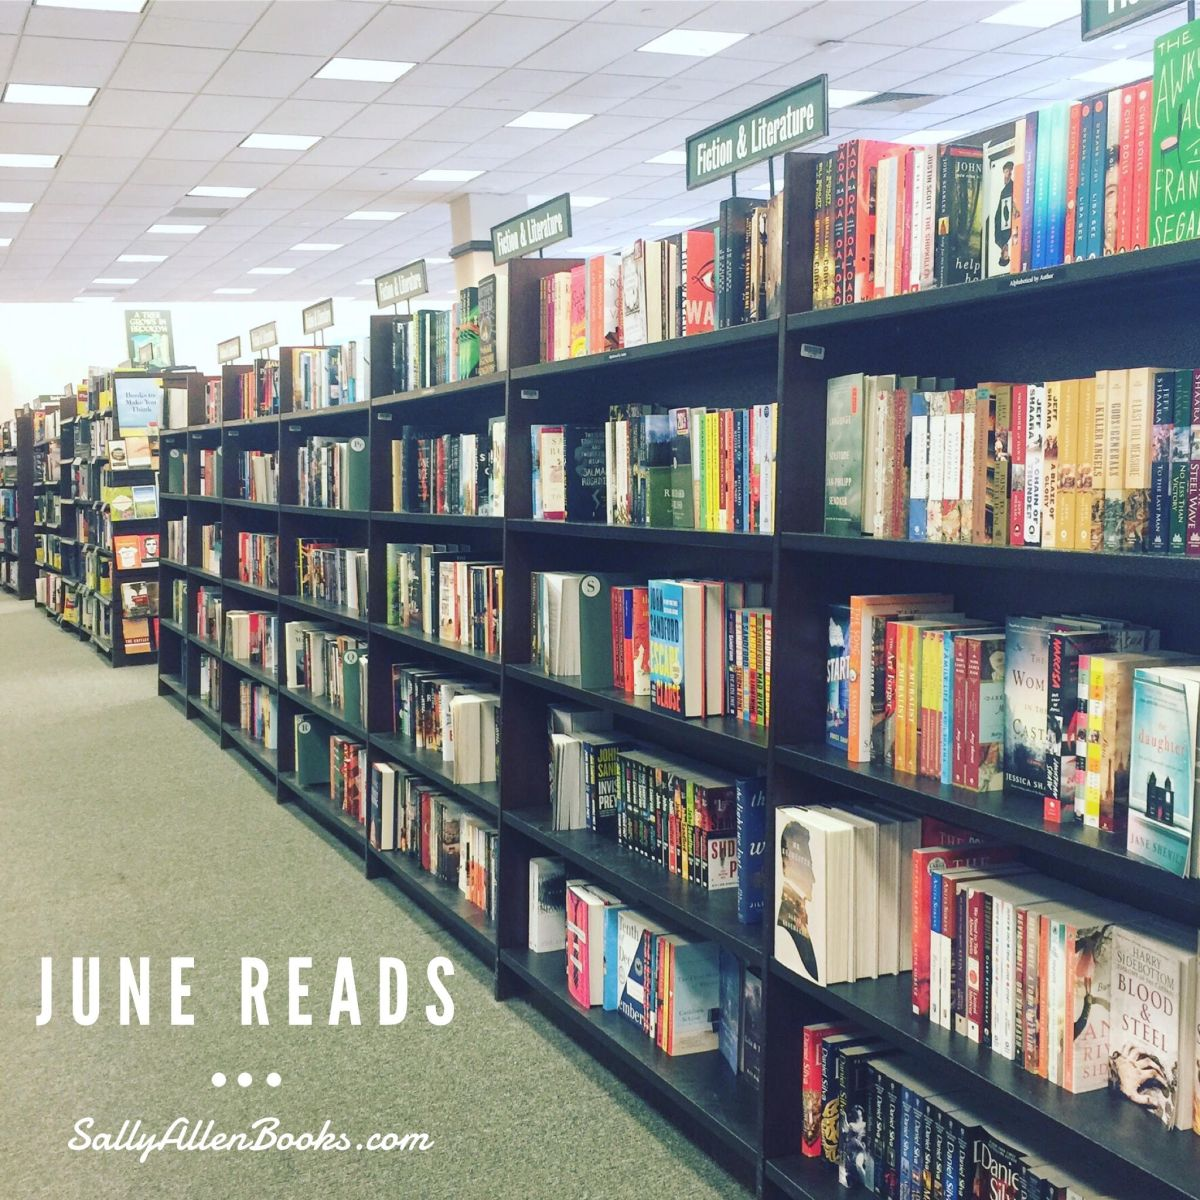 Reading wrap-up: June reads and purchases